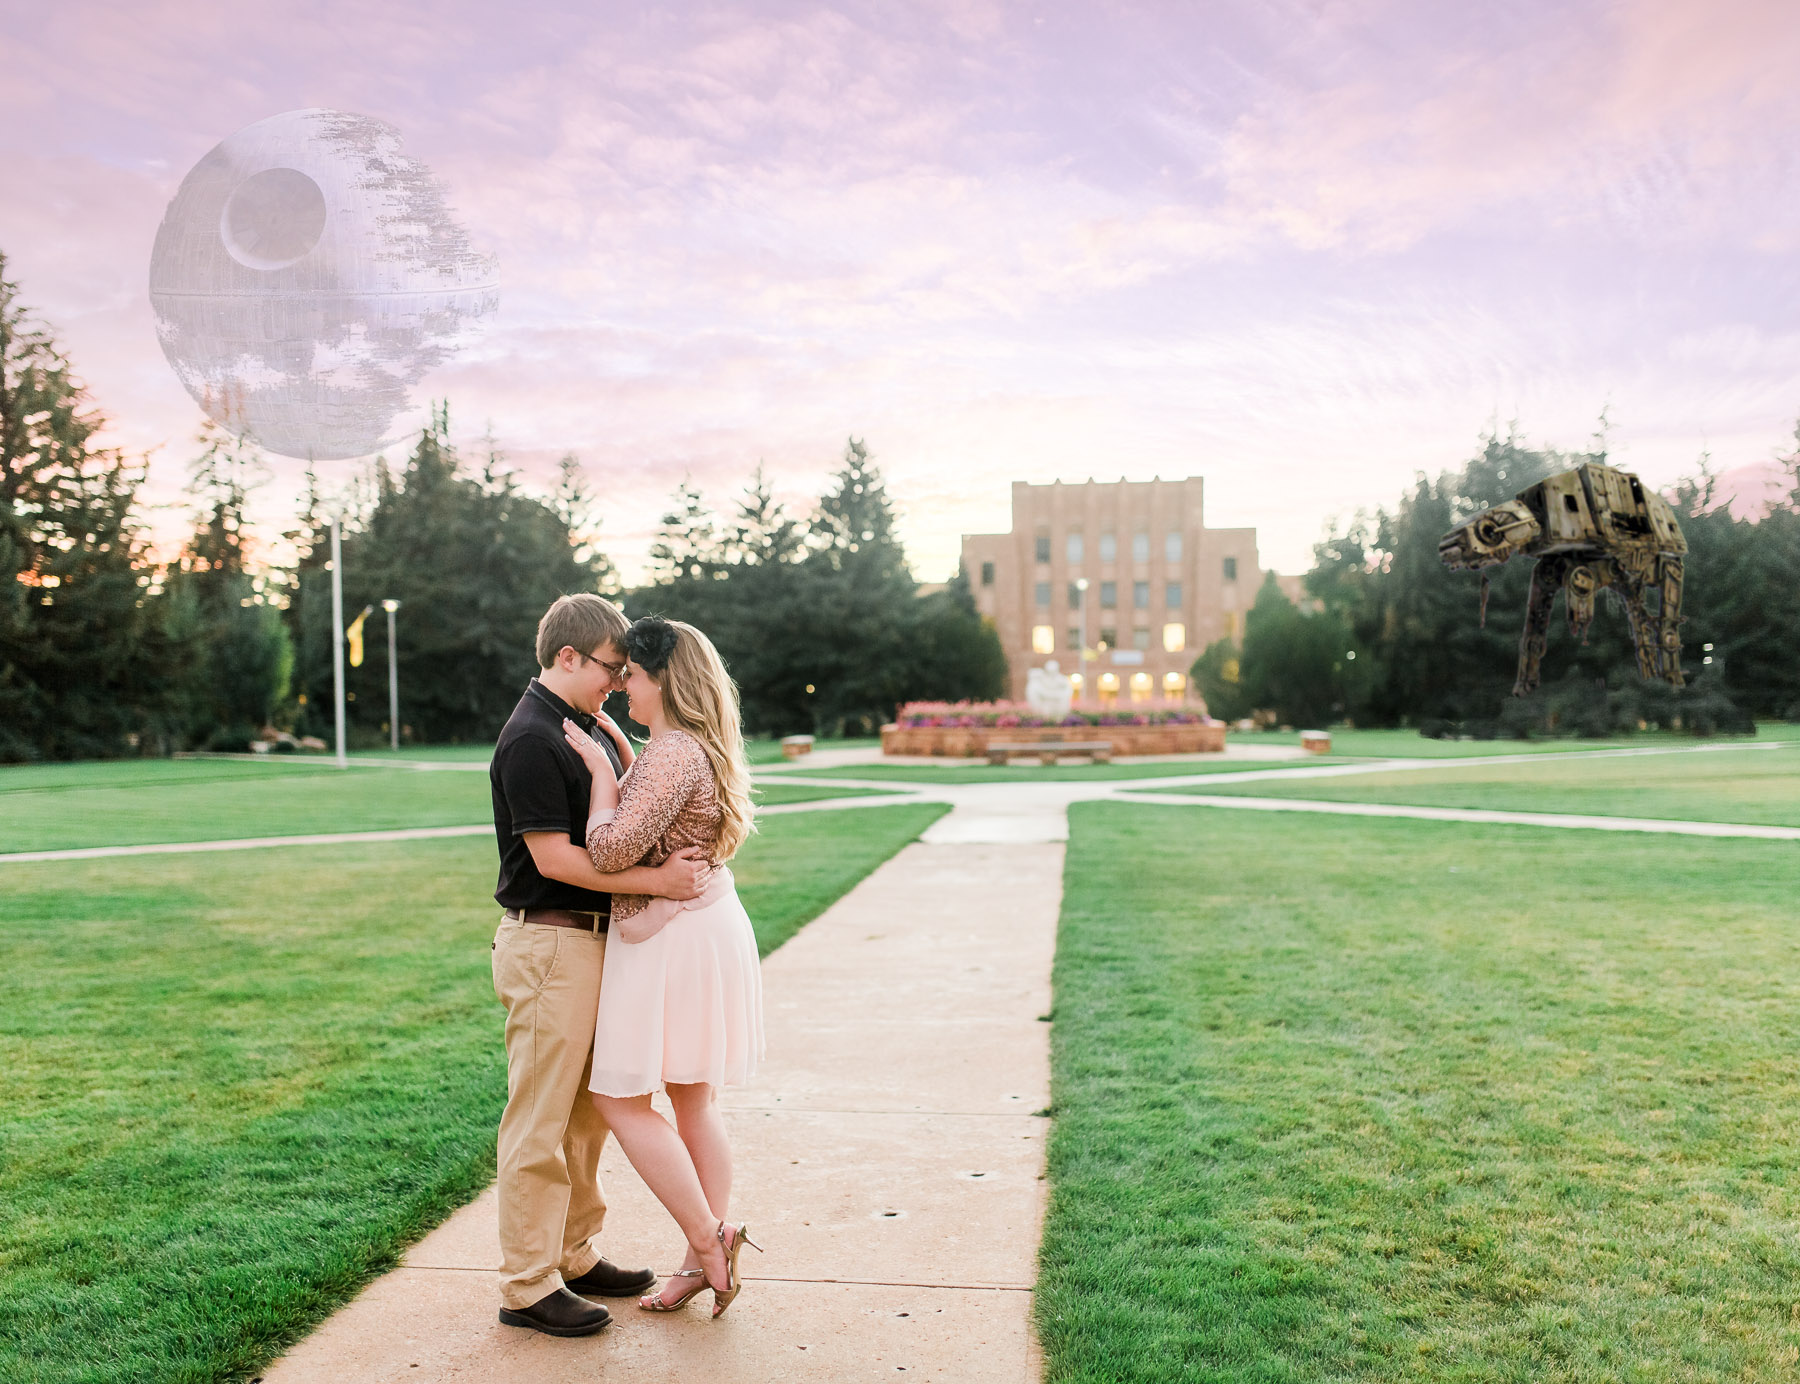 University of Wyoming Laramie Wyoming Engagement Photography By Megan Lee